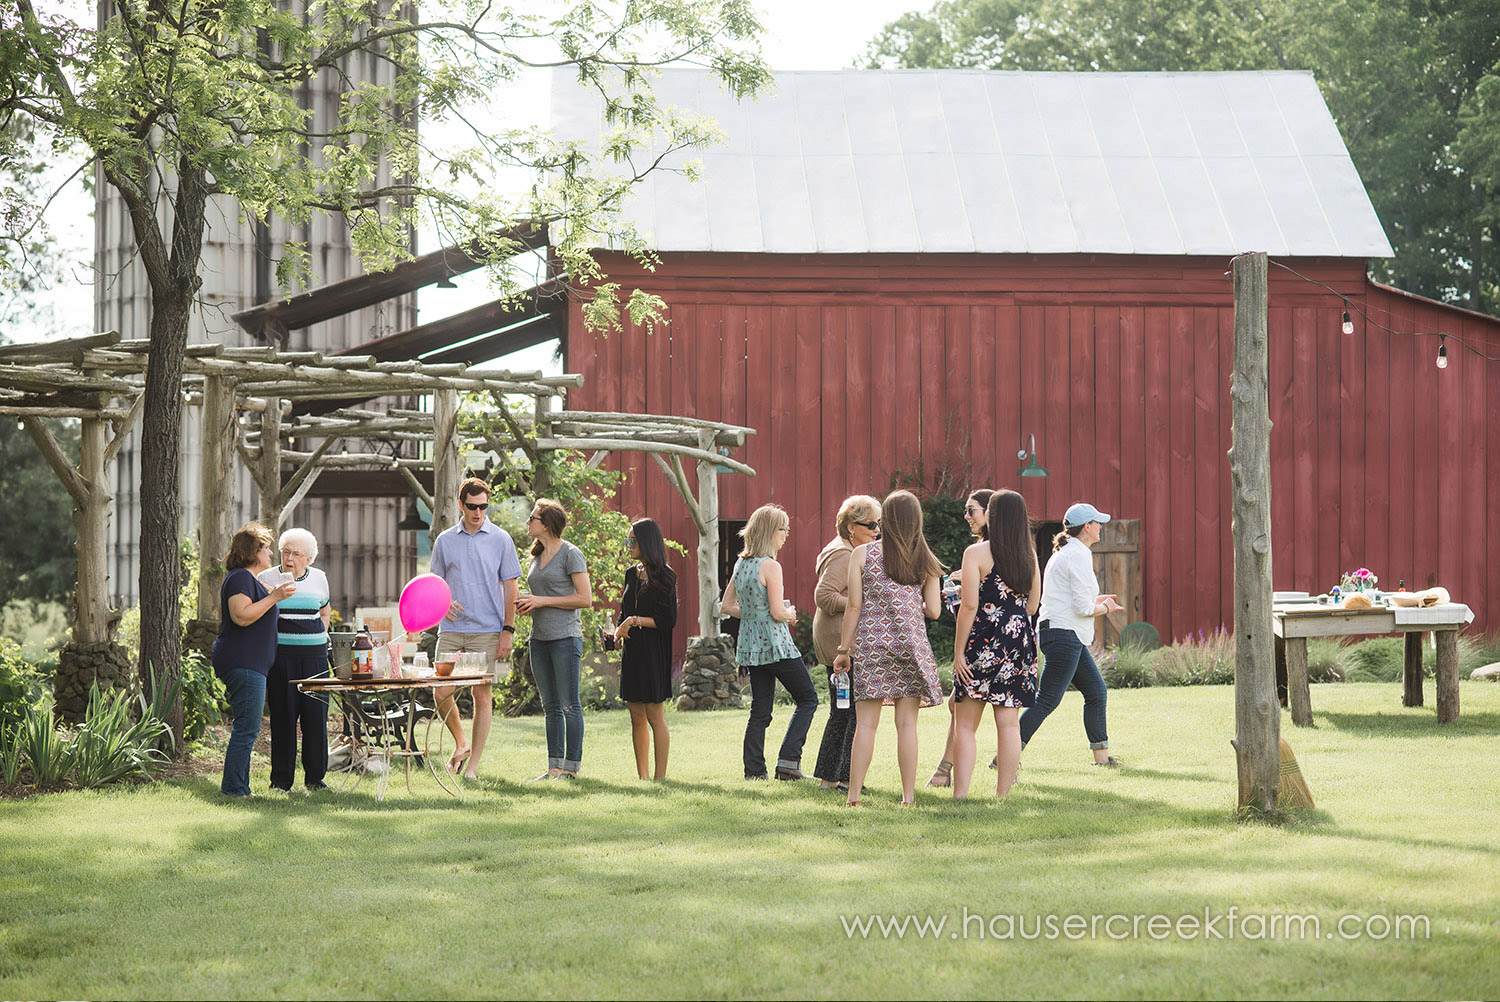 farm-dinner-party-scene-at-hauser-creek-farm-photo-by-alethea-segal-2017_184.jpg